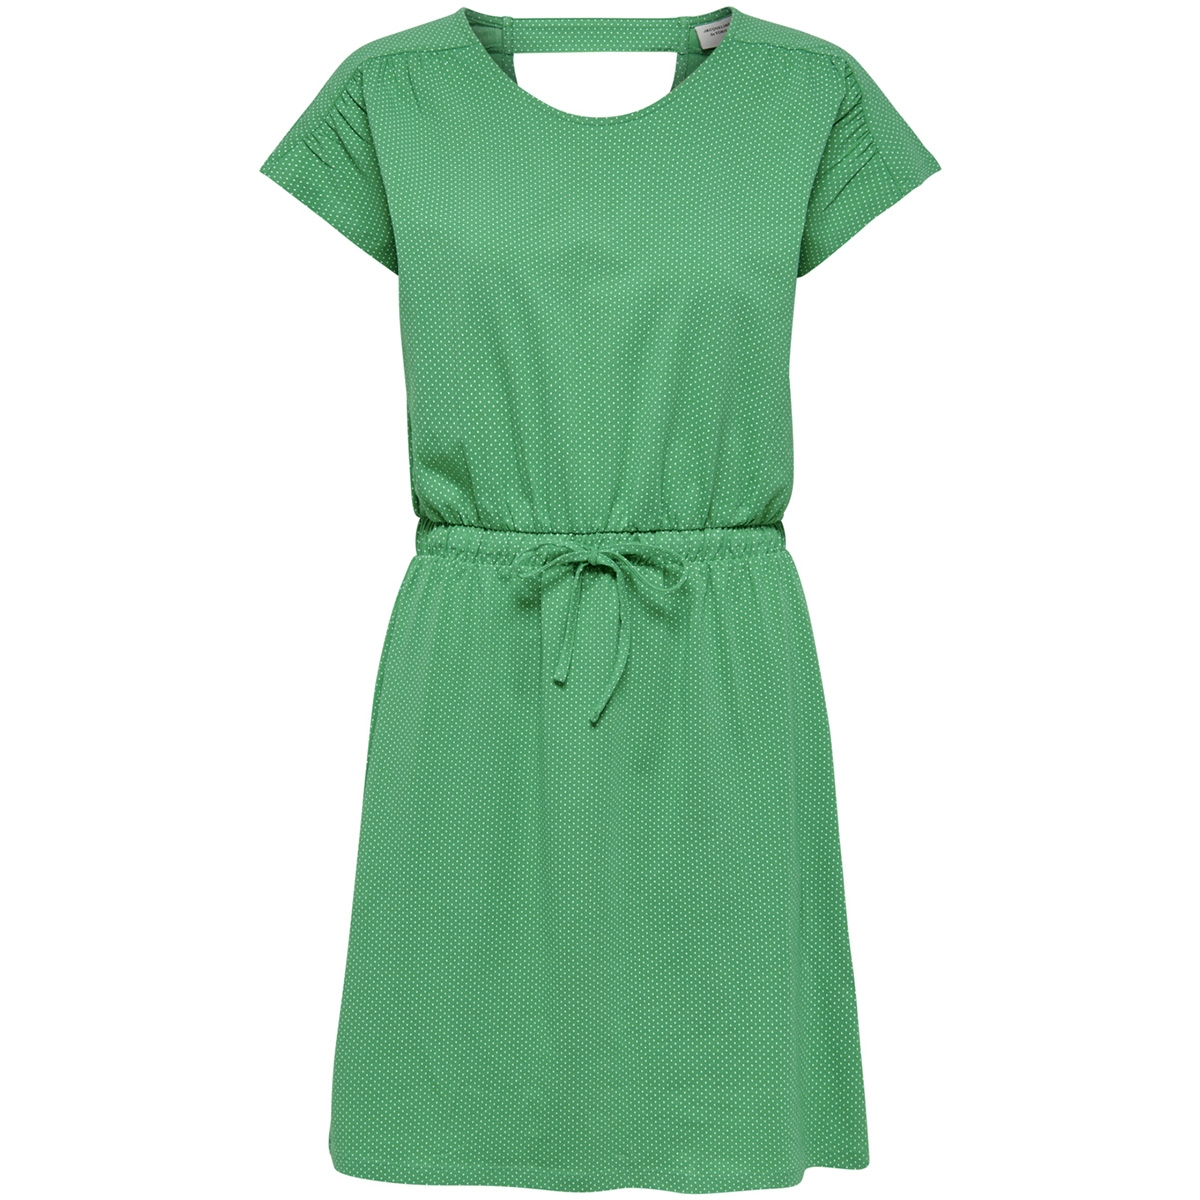 jdybillie treats aop s s knee dress 15174384 jacqueline de yong jurk simply green/mini dot a